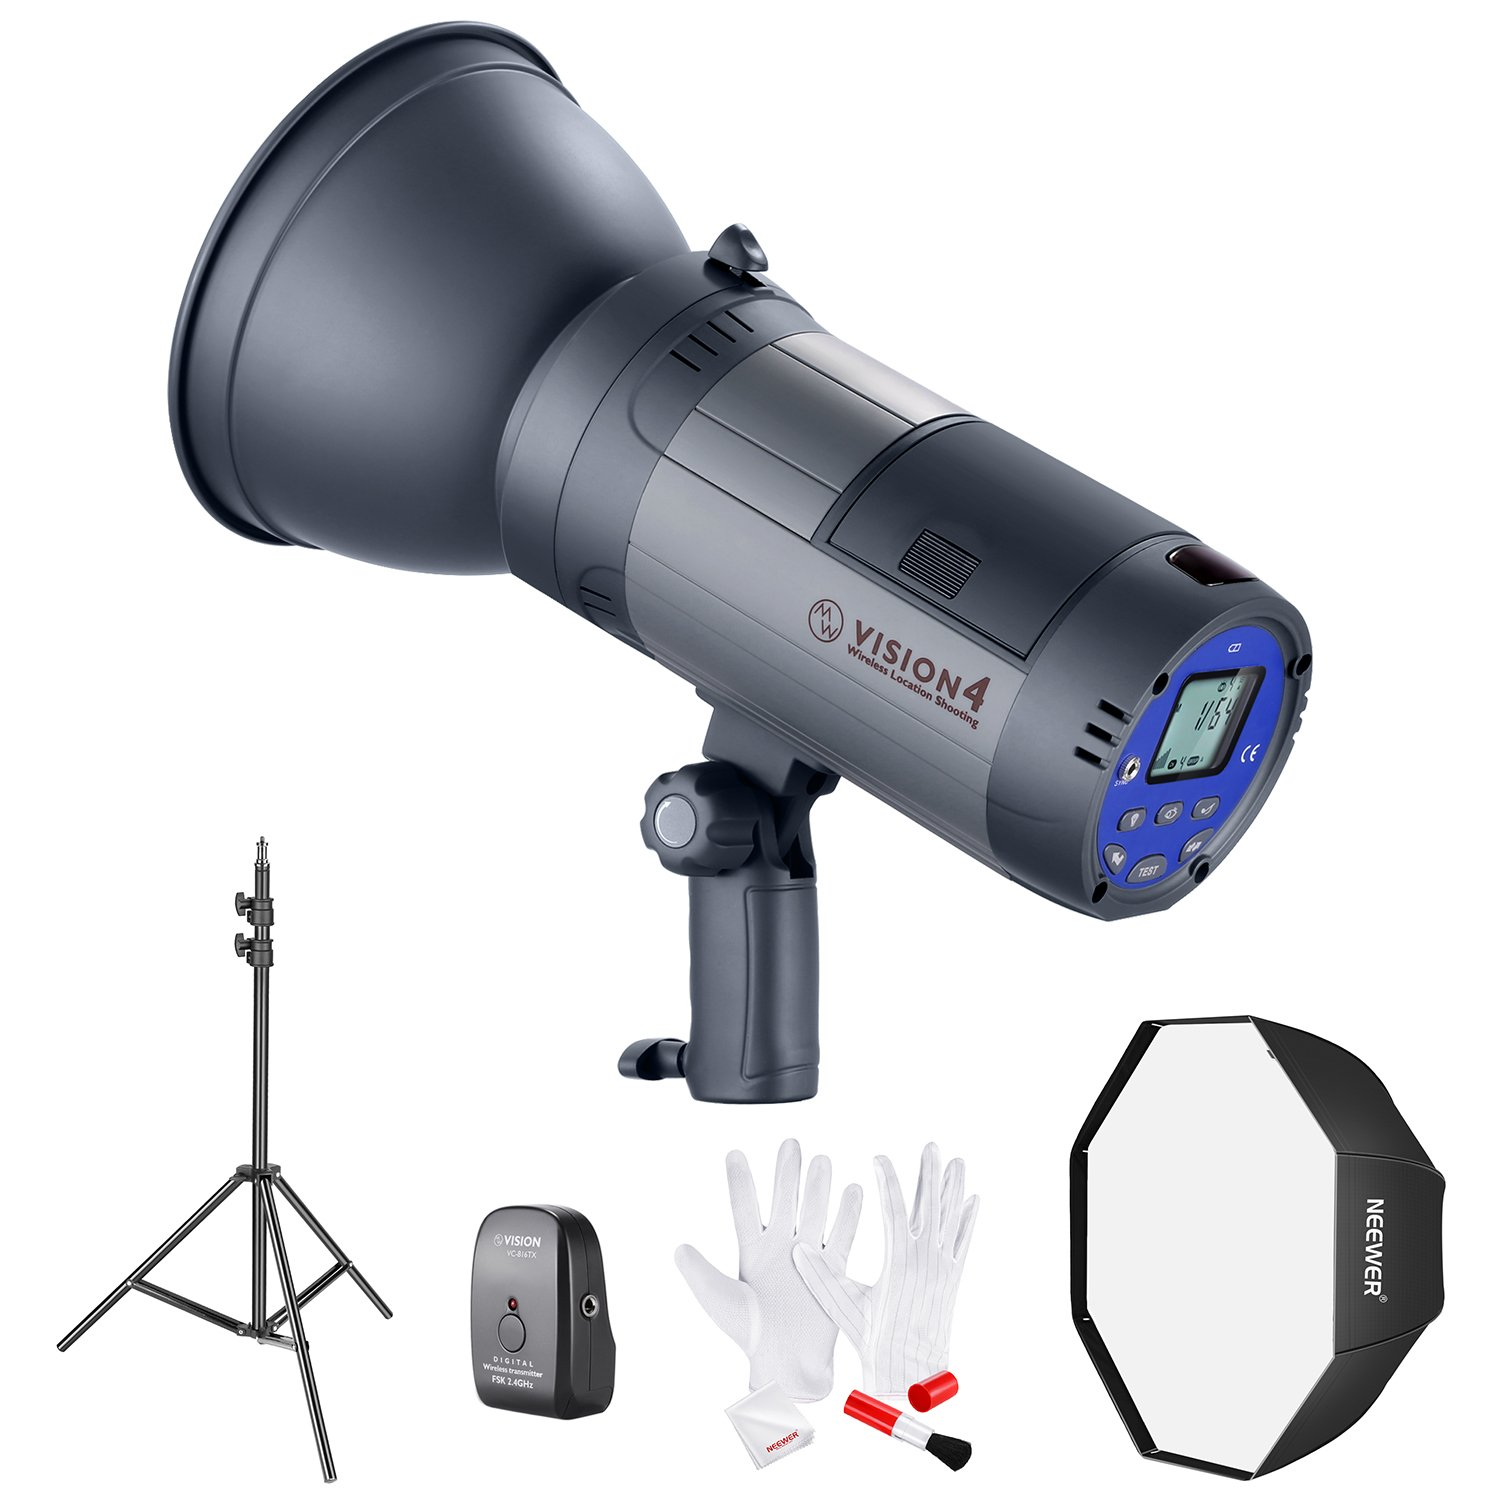 Neewer Vision 4 Powered Outdoor Studio Flash Strobe (700 Full Power flashes) with Softbox, Light Stand and Cleaning Kit for Video Location Photography by Neewer